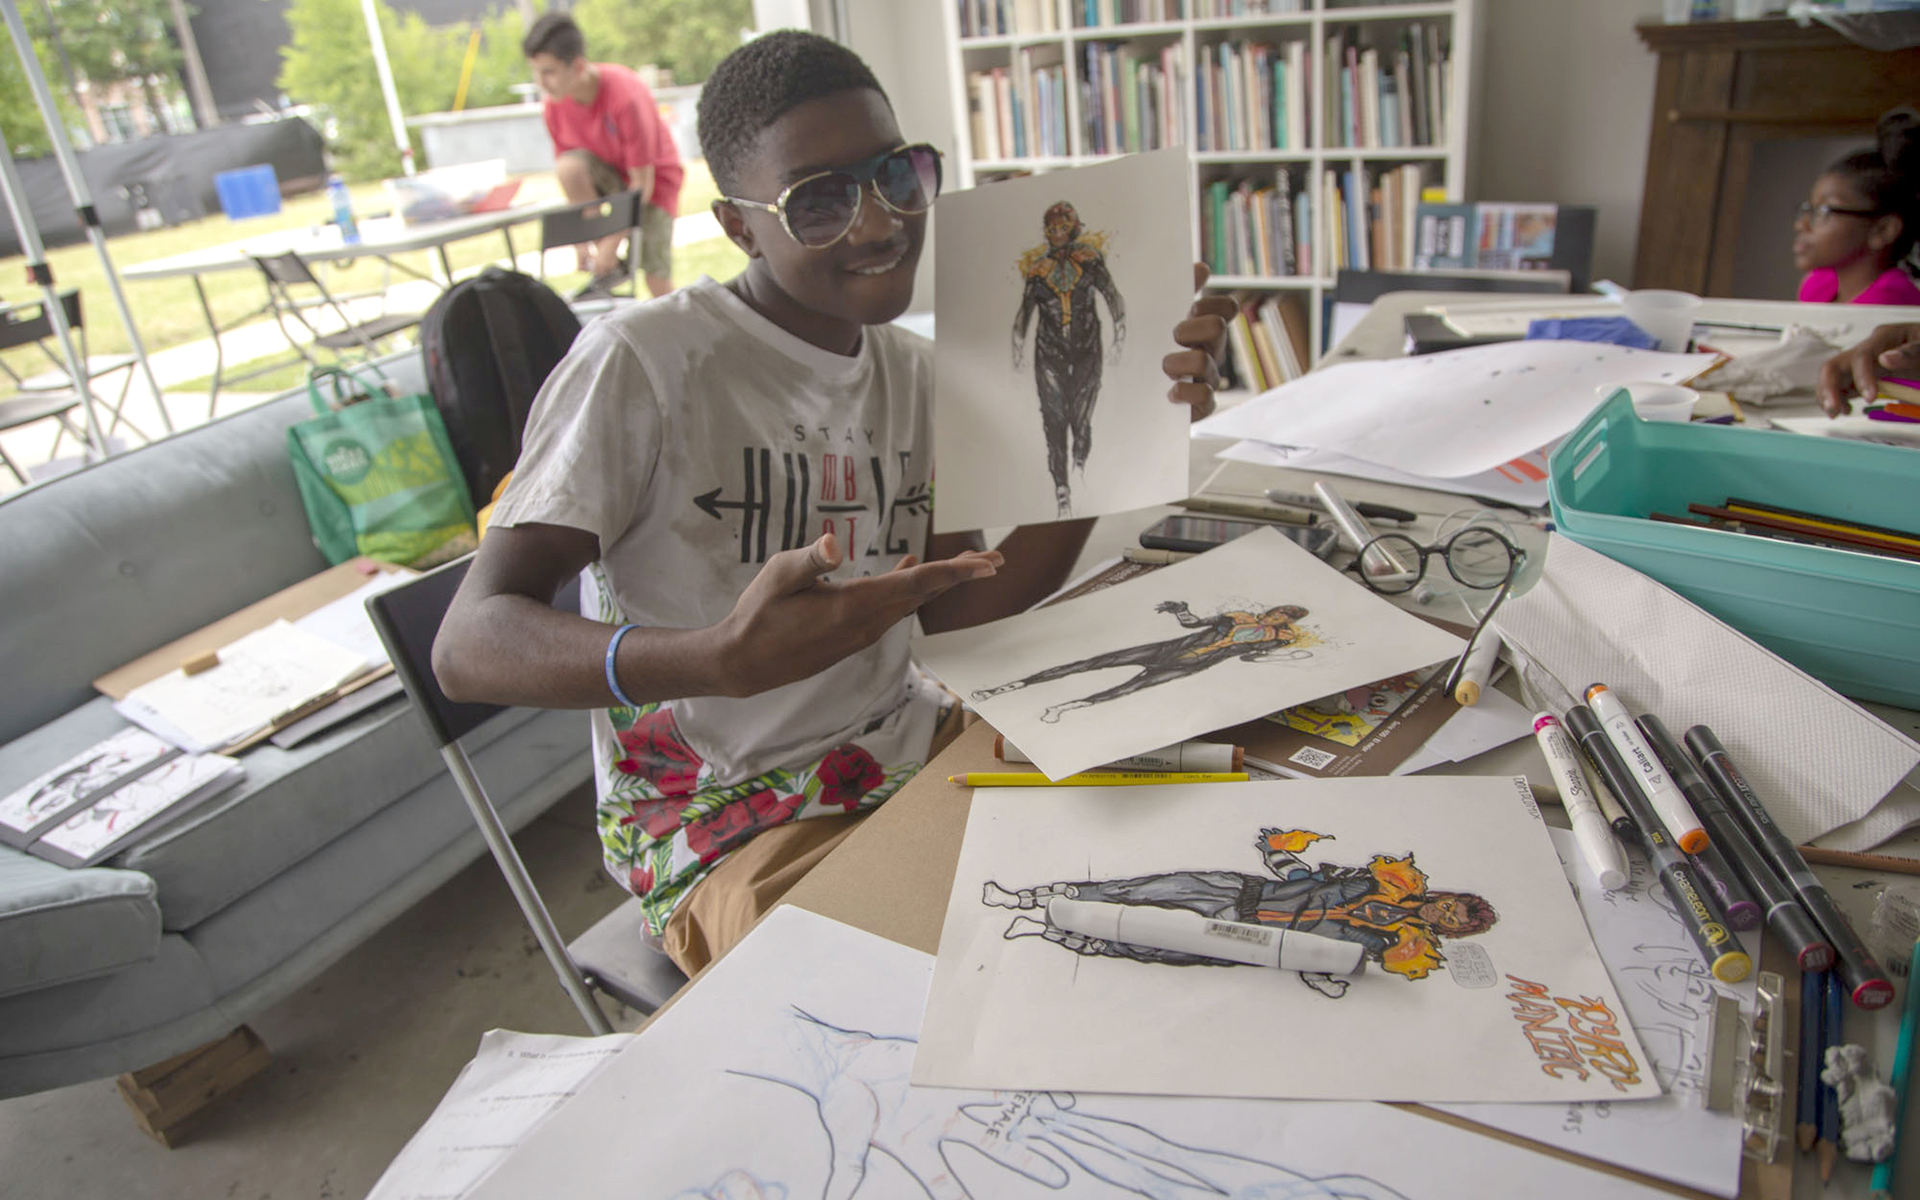 Youth participant in the KAWS EFFECTS: Character Design Summer Camp at MOCAD